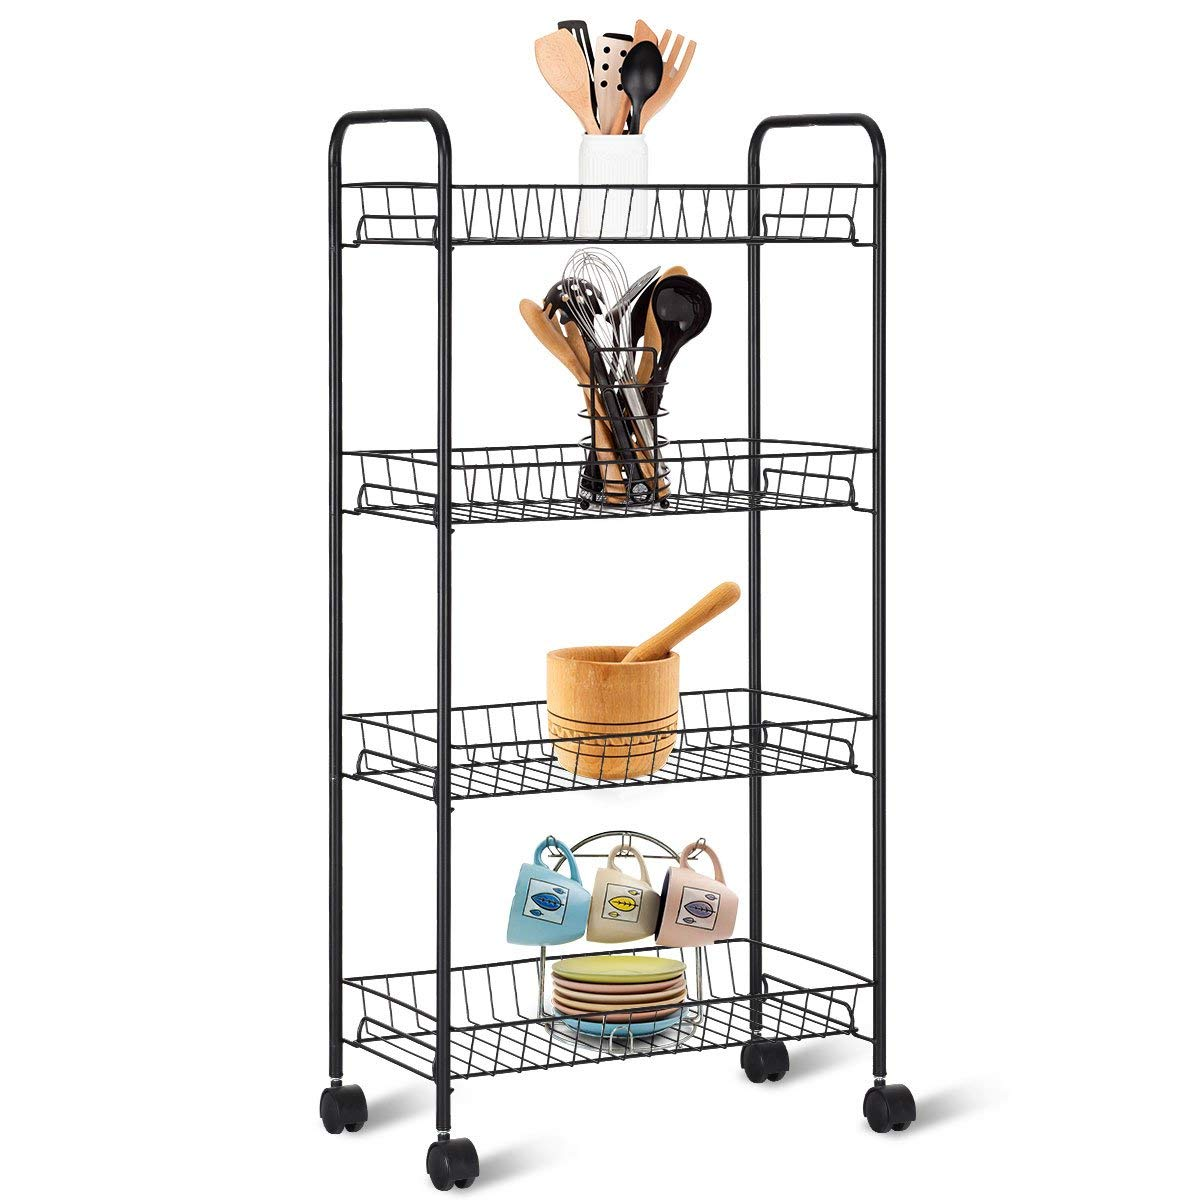 Giantex Kitchen Metal Utility Cart Rolling Wheels Shelving Tower Rack Mesh Wire Baskets Multifunctional Bathroom Kitchen Storage Unit Carts and Islands, Black (4 Tier)